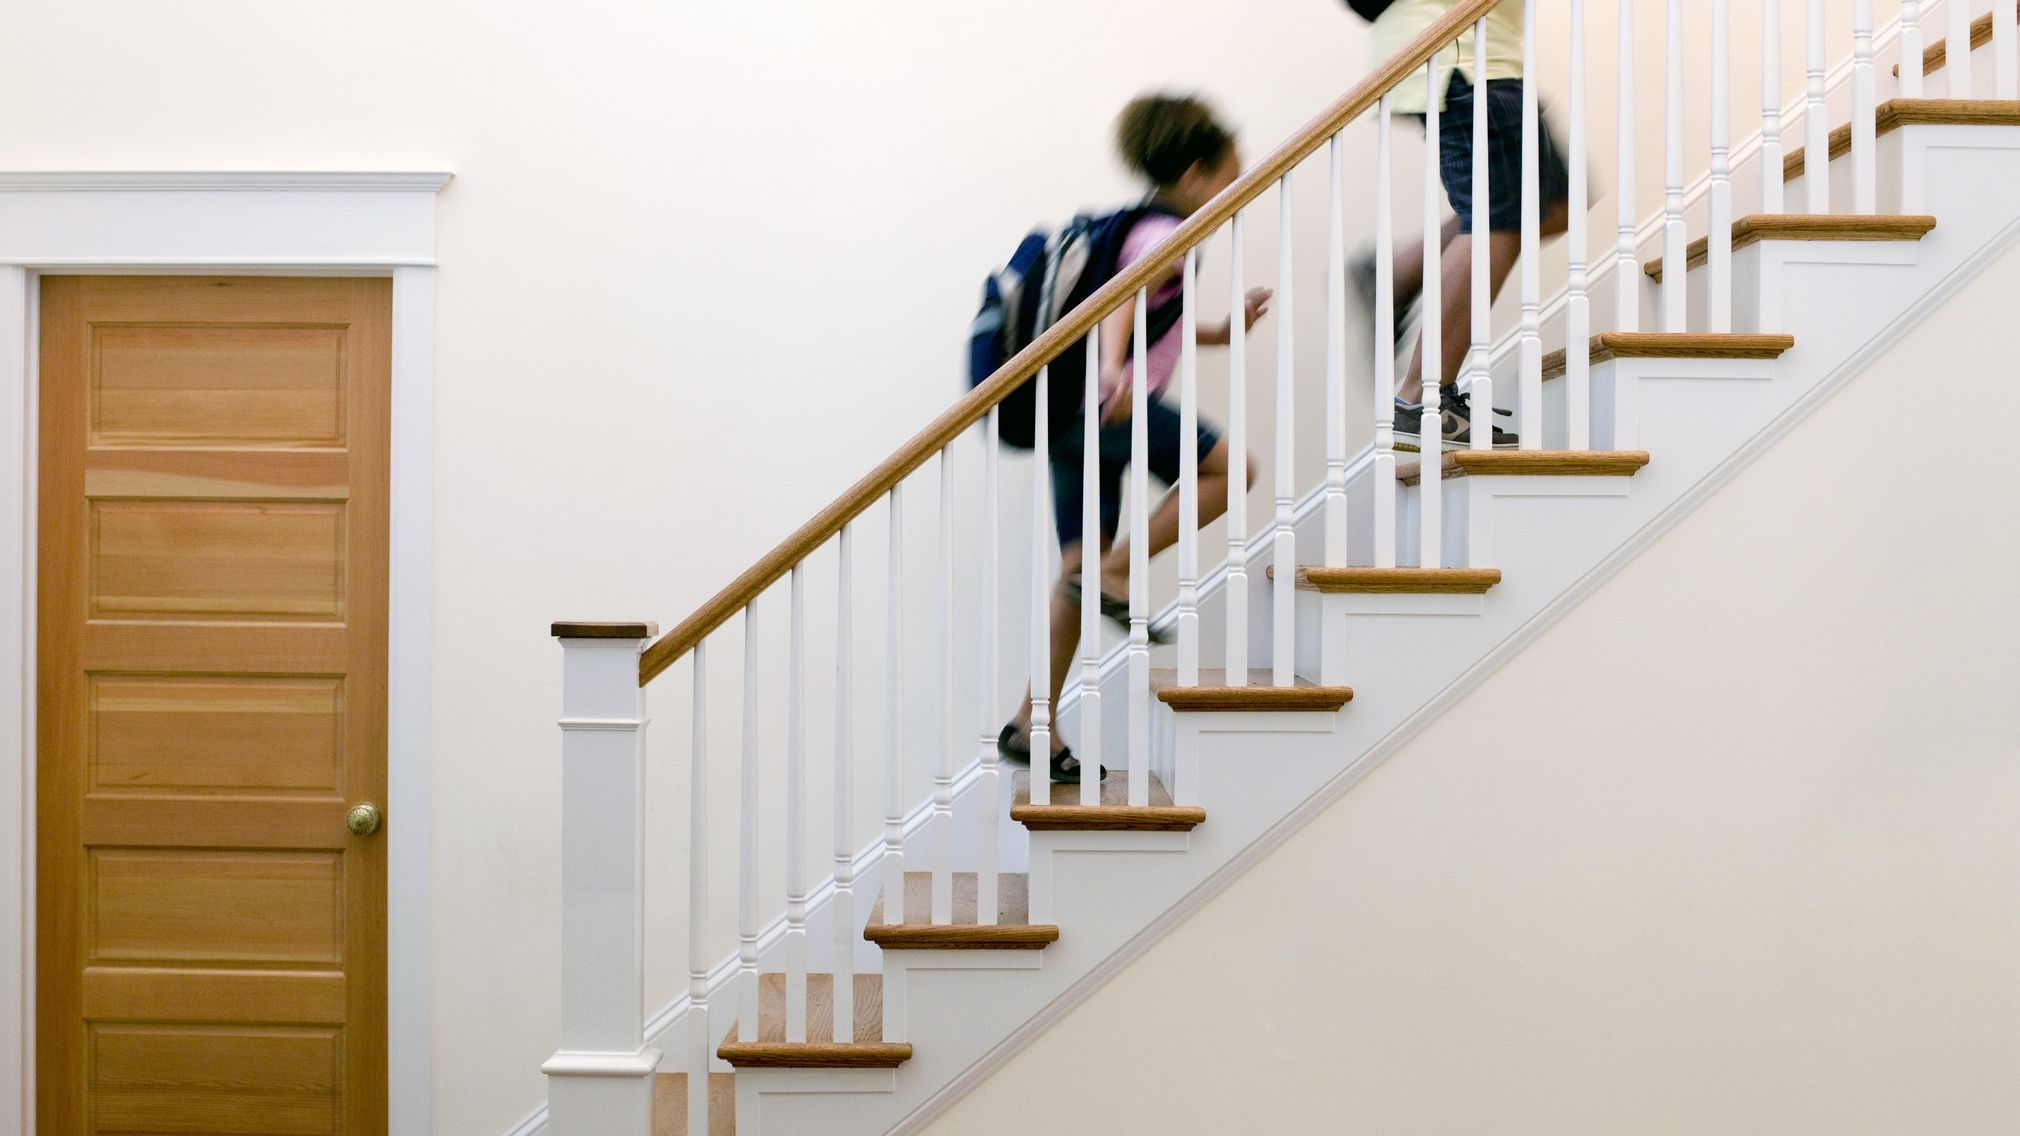 How To Install Stair Railing | Interior Handrails For Steps | Aircraft Cable | Wrought Iron | Western | Closed Staircase | Stair Bannister